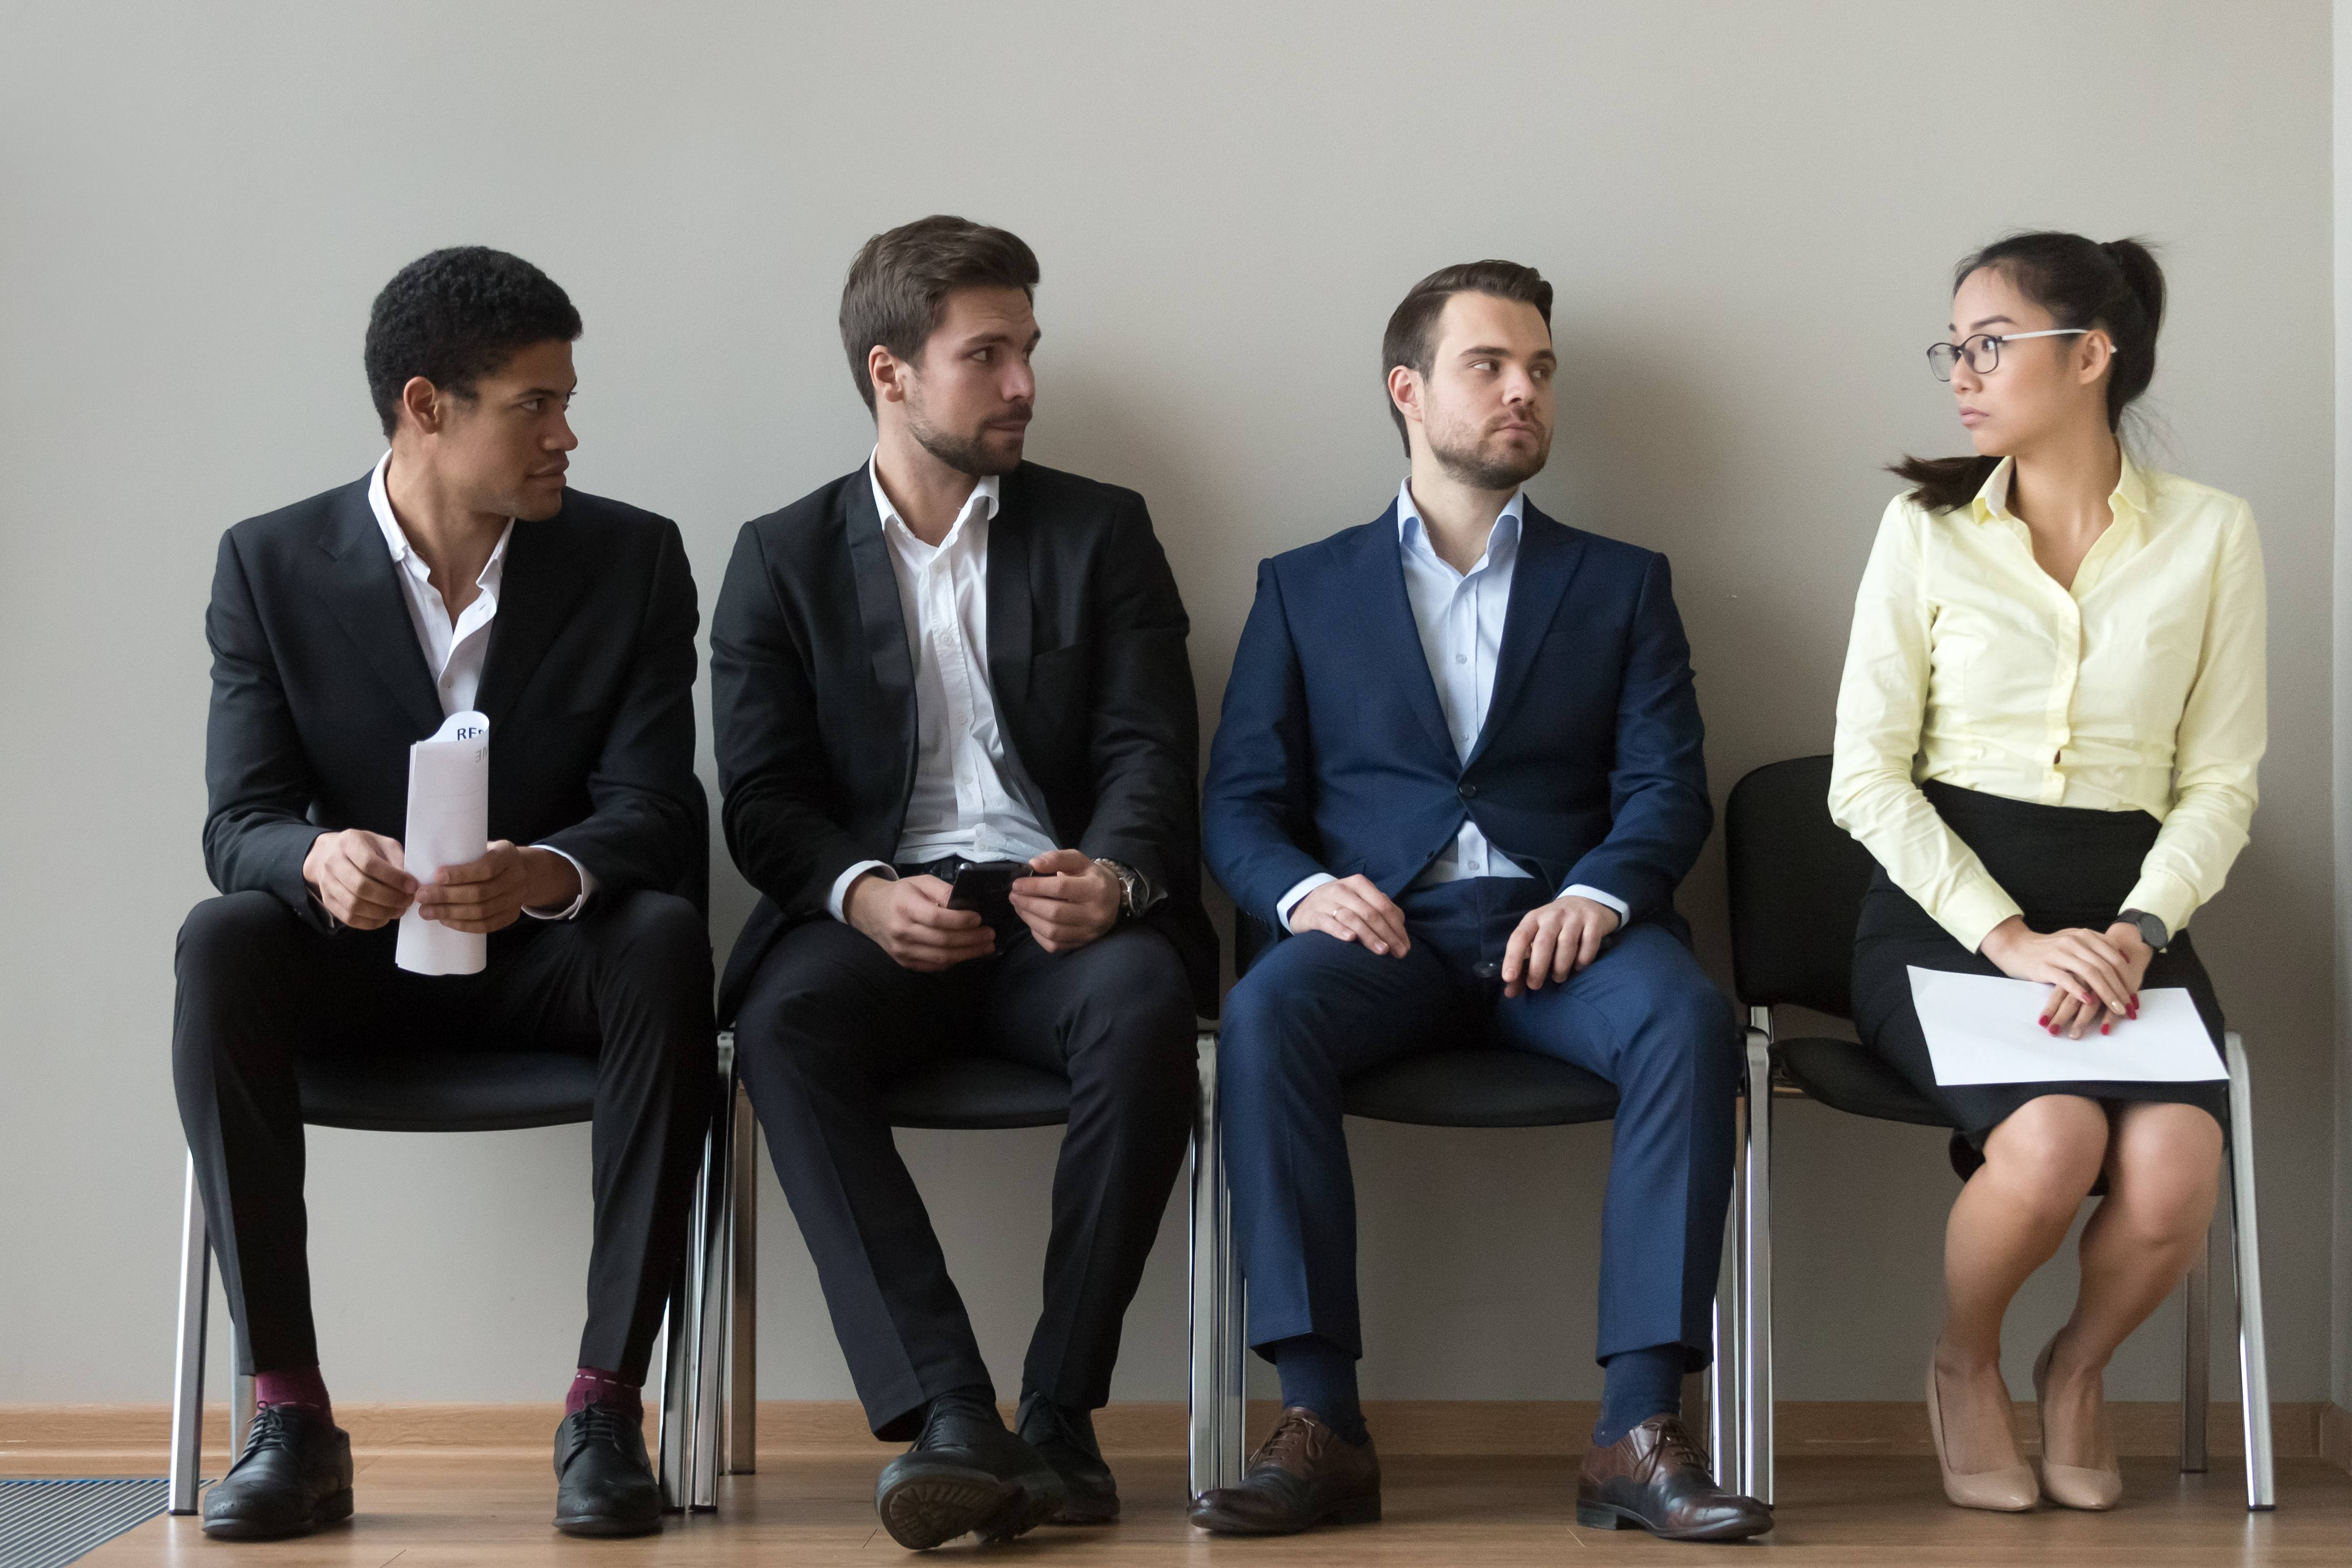 three males and one female seated in a row, unfair gender discrimination at work concept